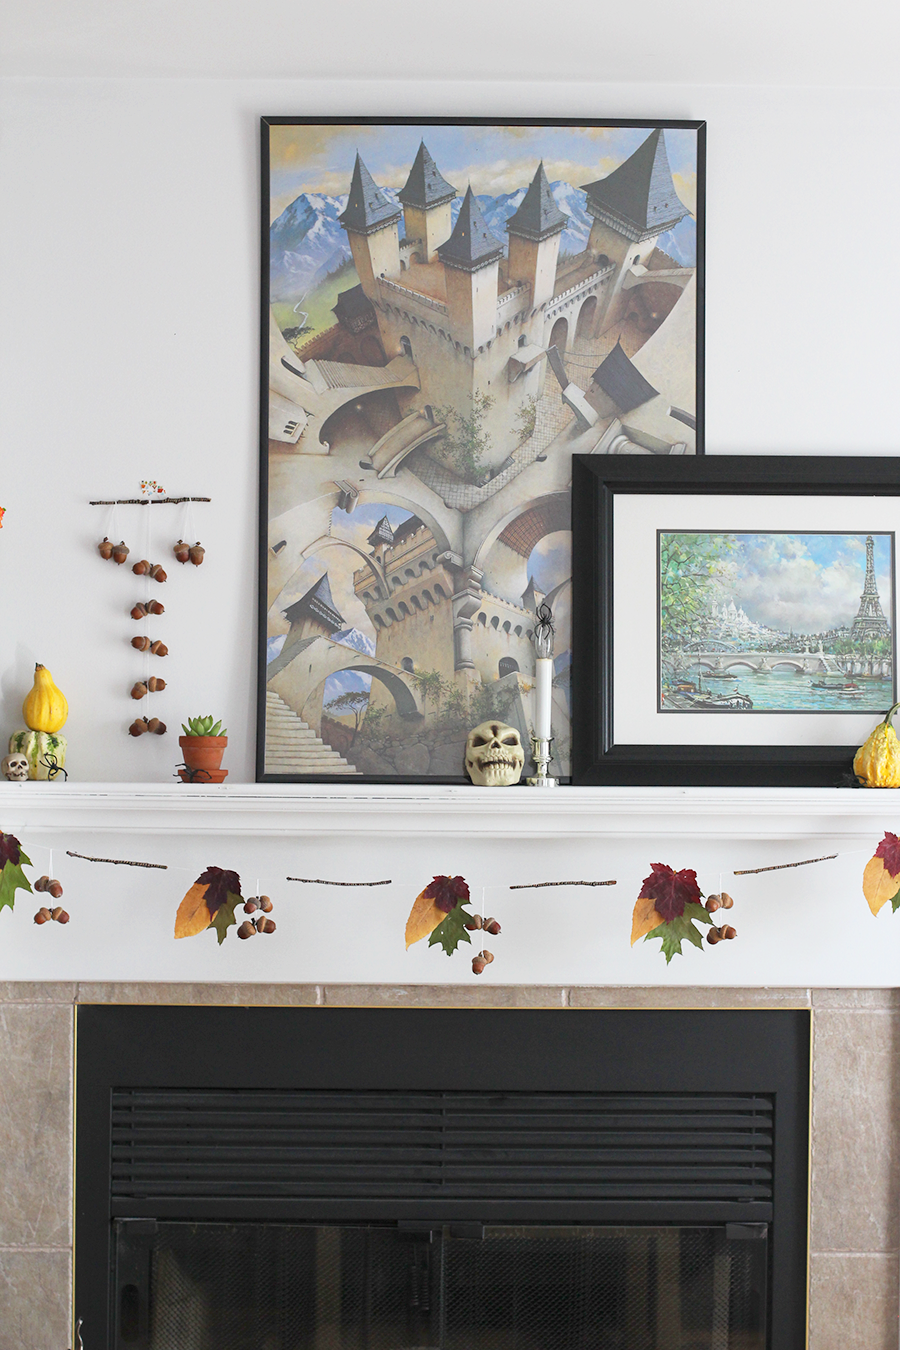 Fall gatherings garland with colored dried leaves, acorns and branches.